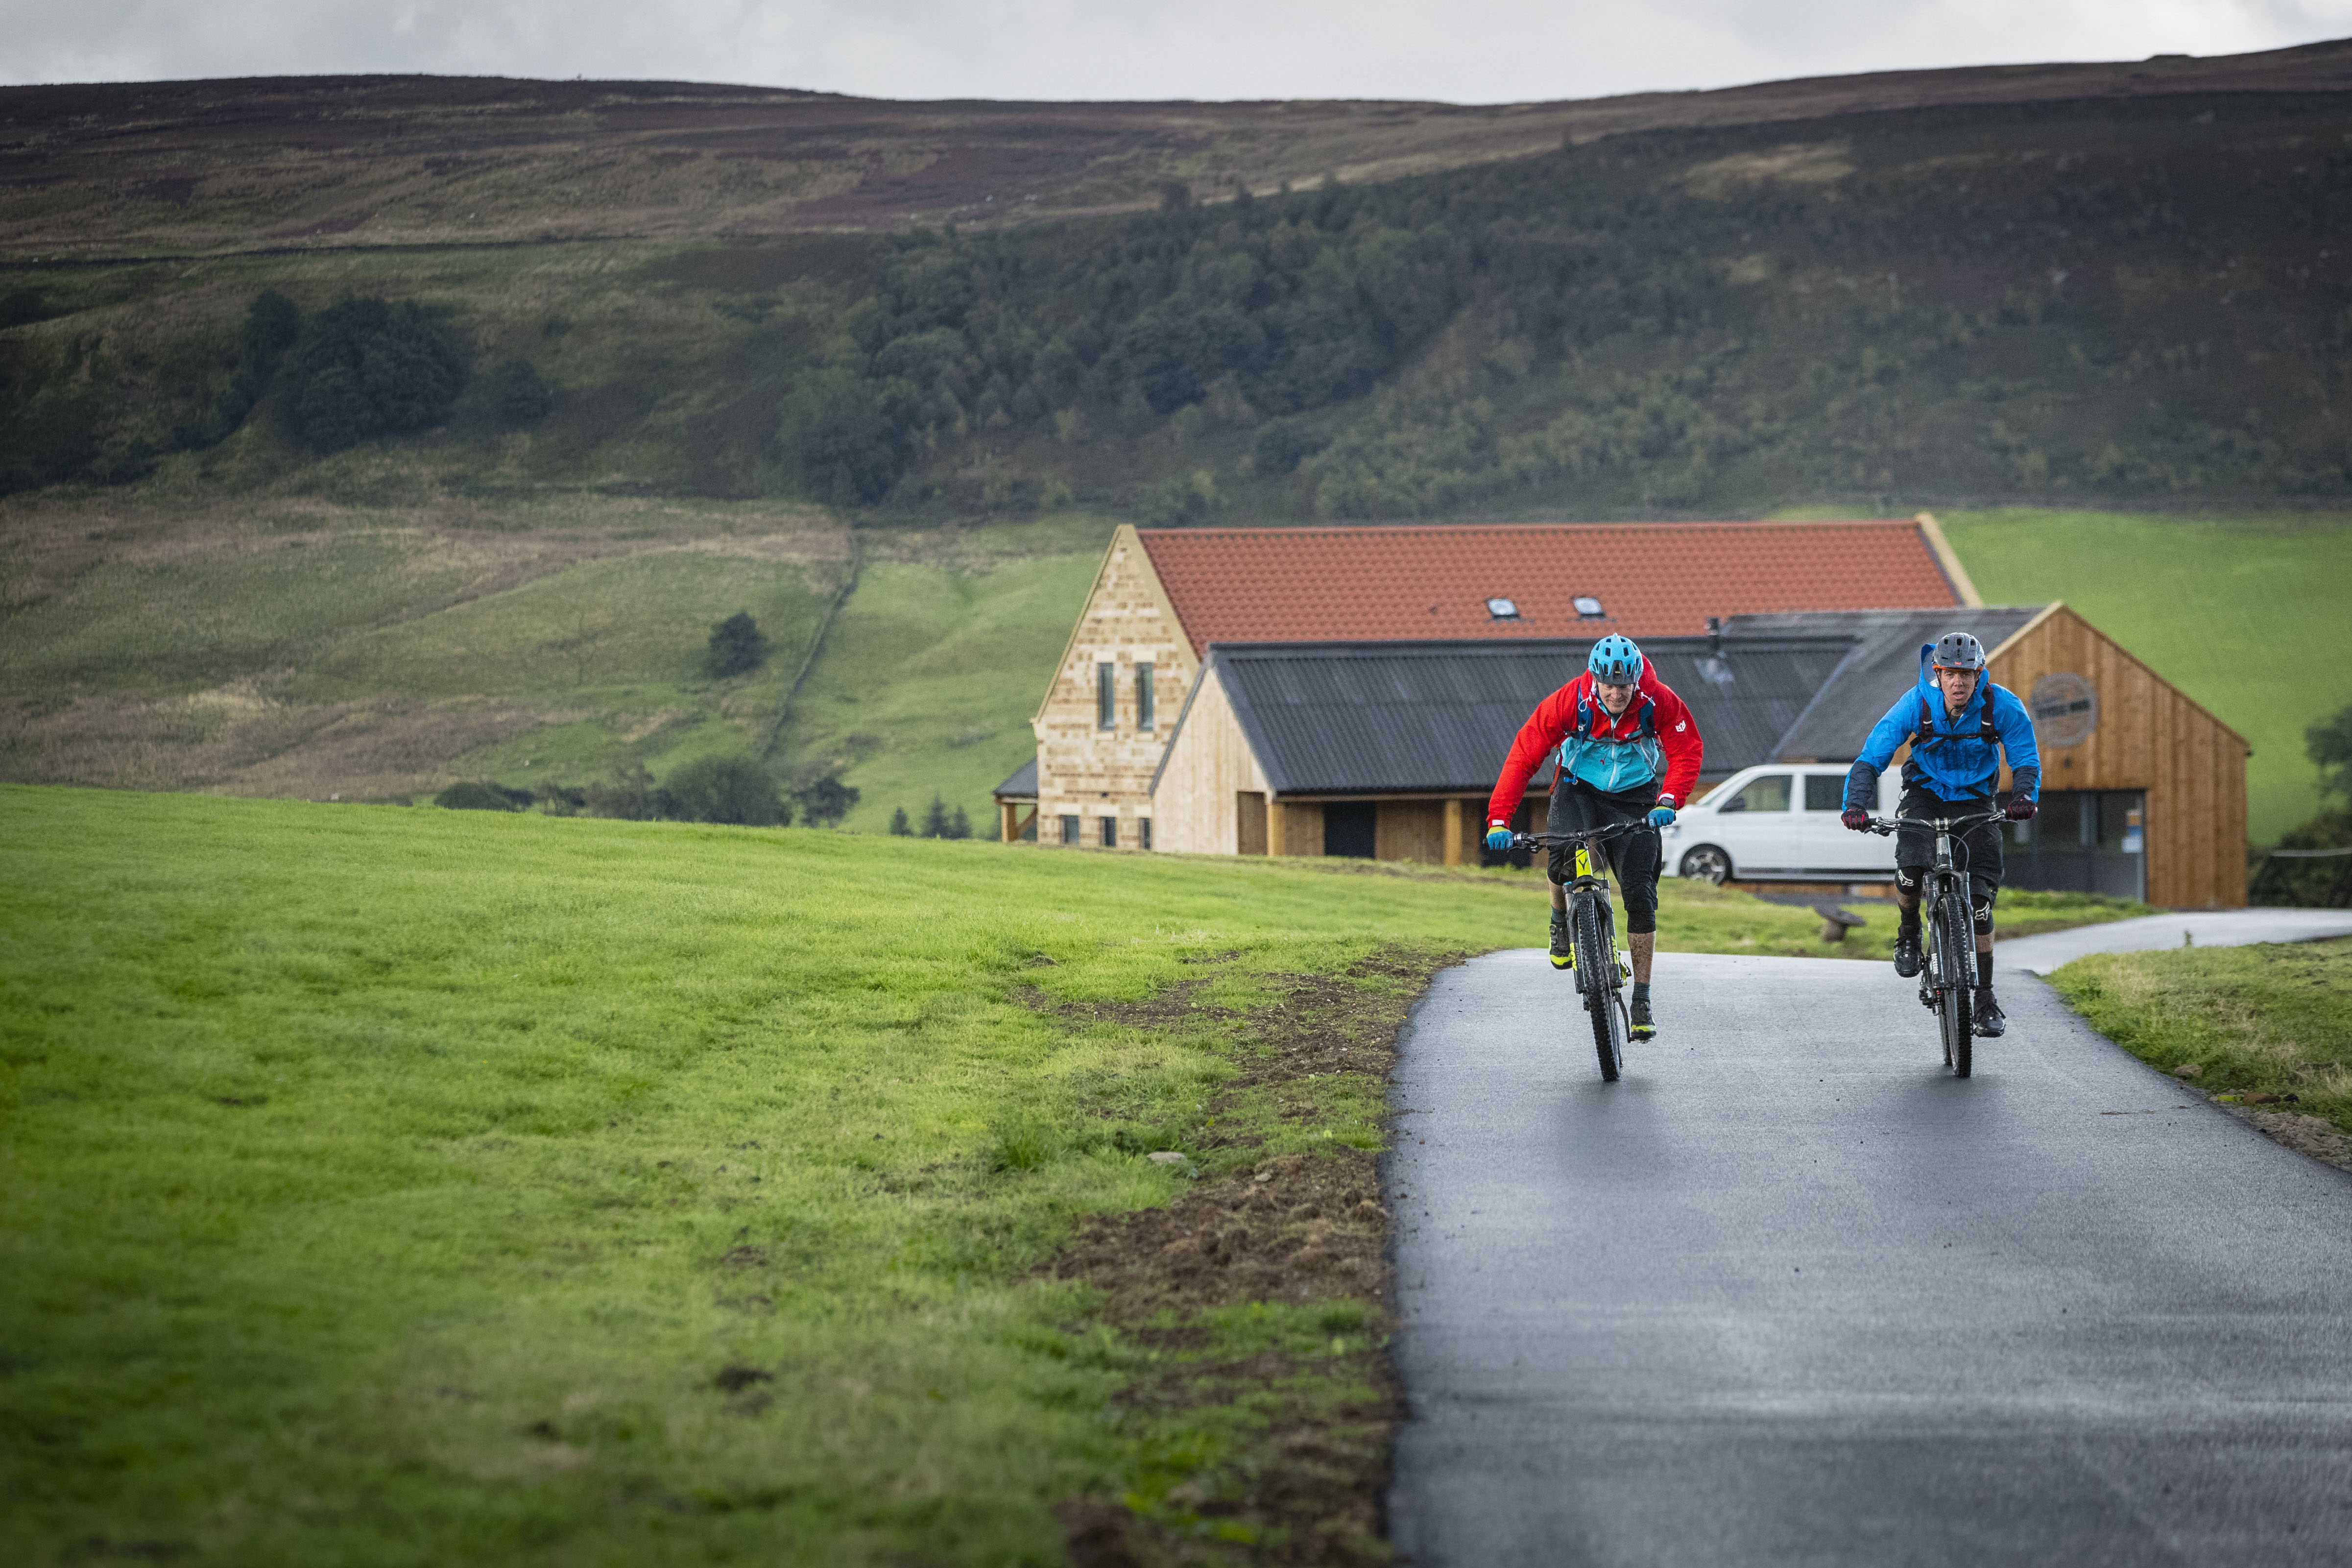 Max Darkins and Phil Thurlow ride away from the Yorkshire Cycle Hub at the start of MBUK's big ride in the North York Moors